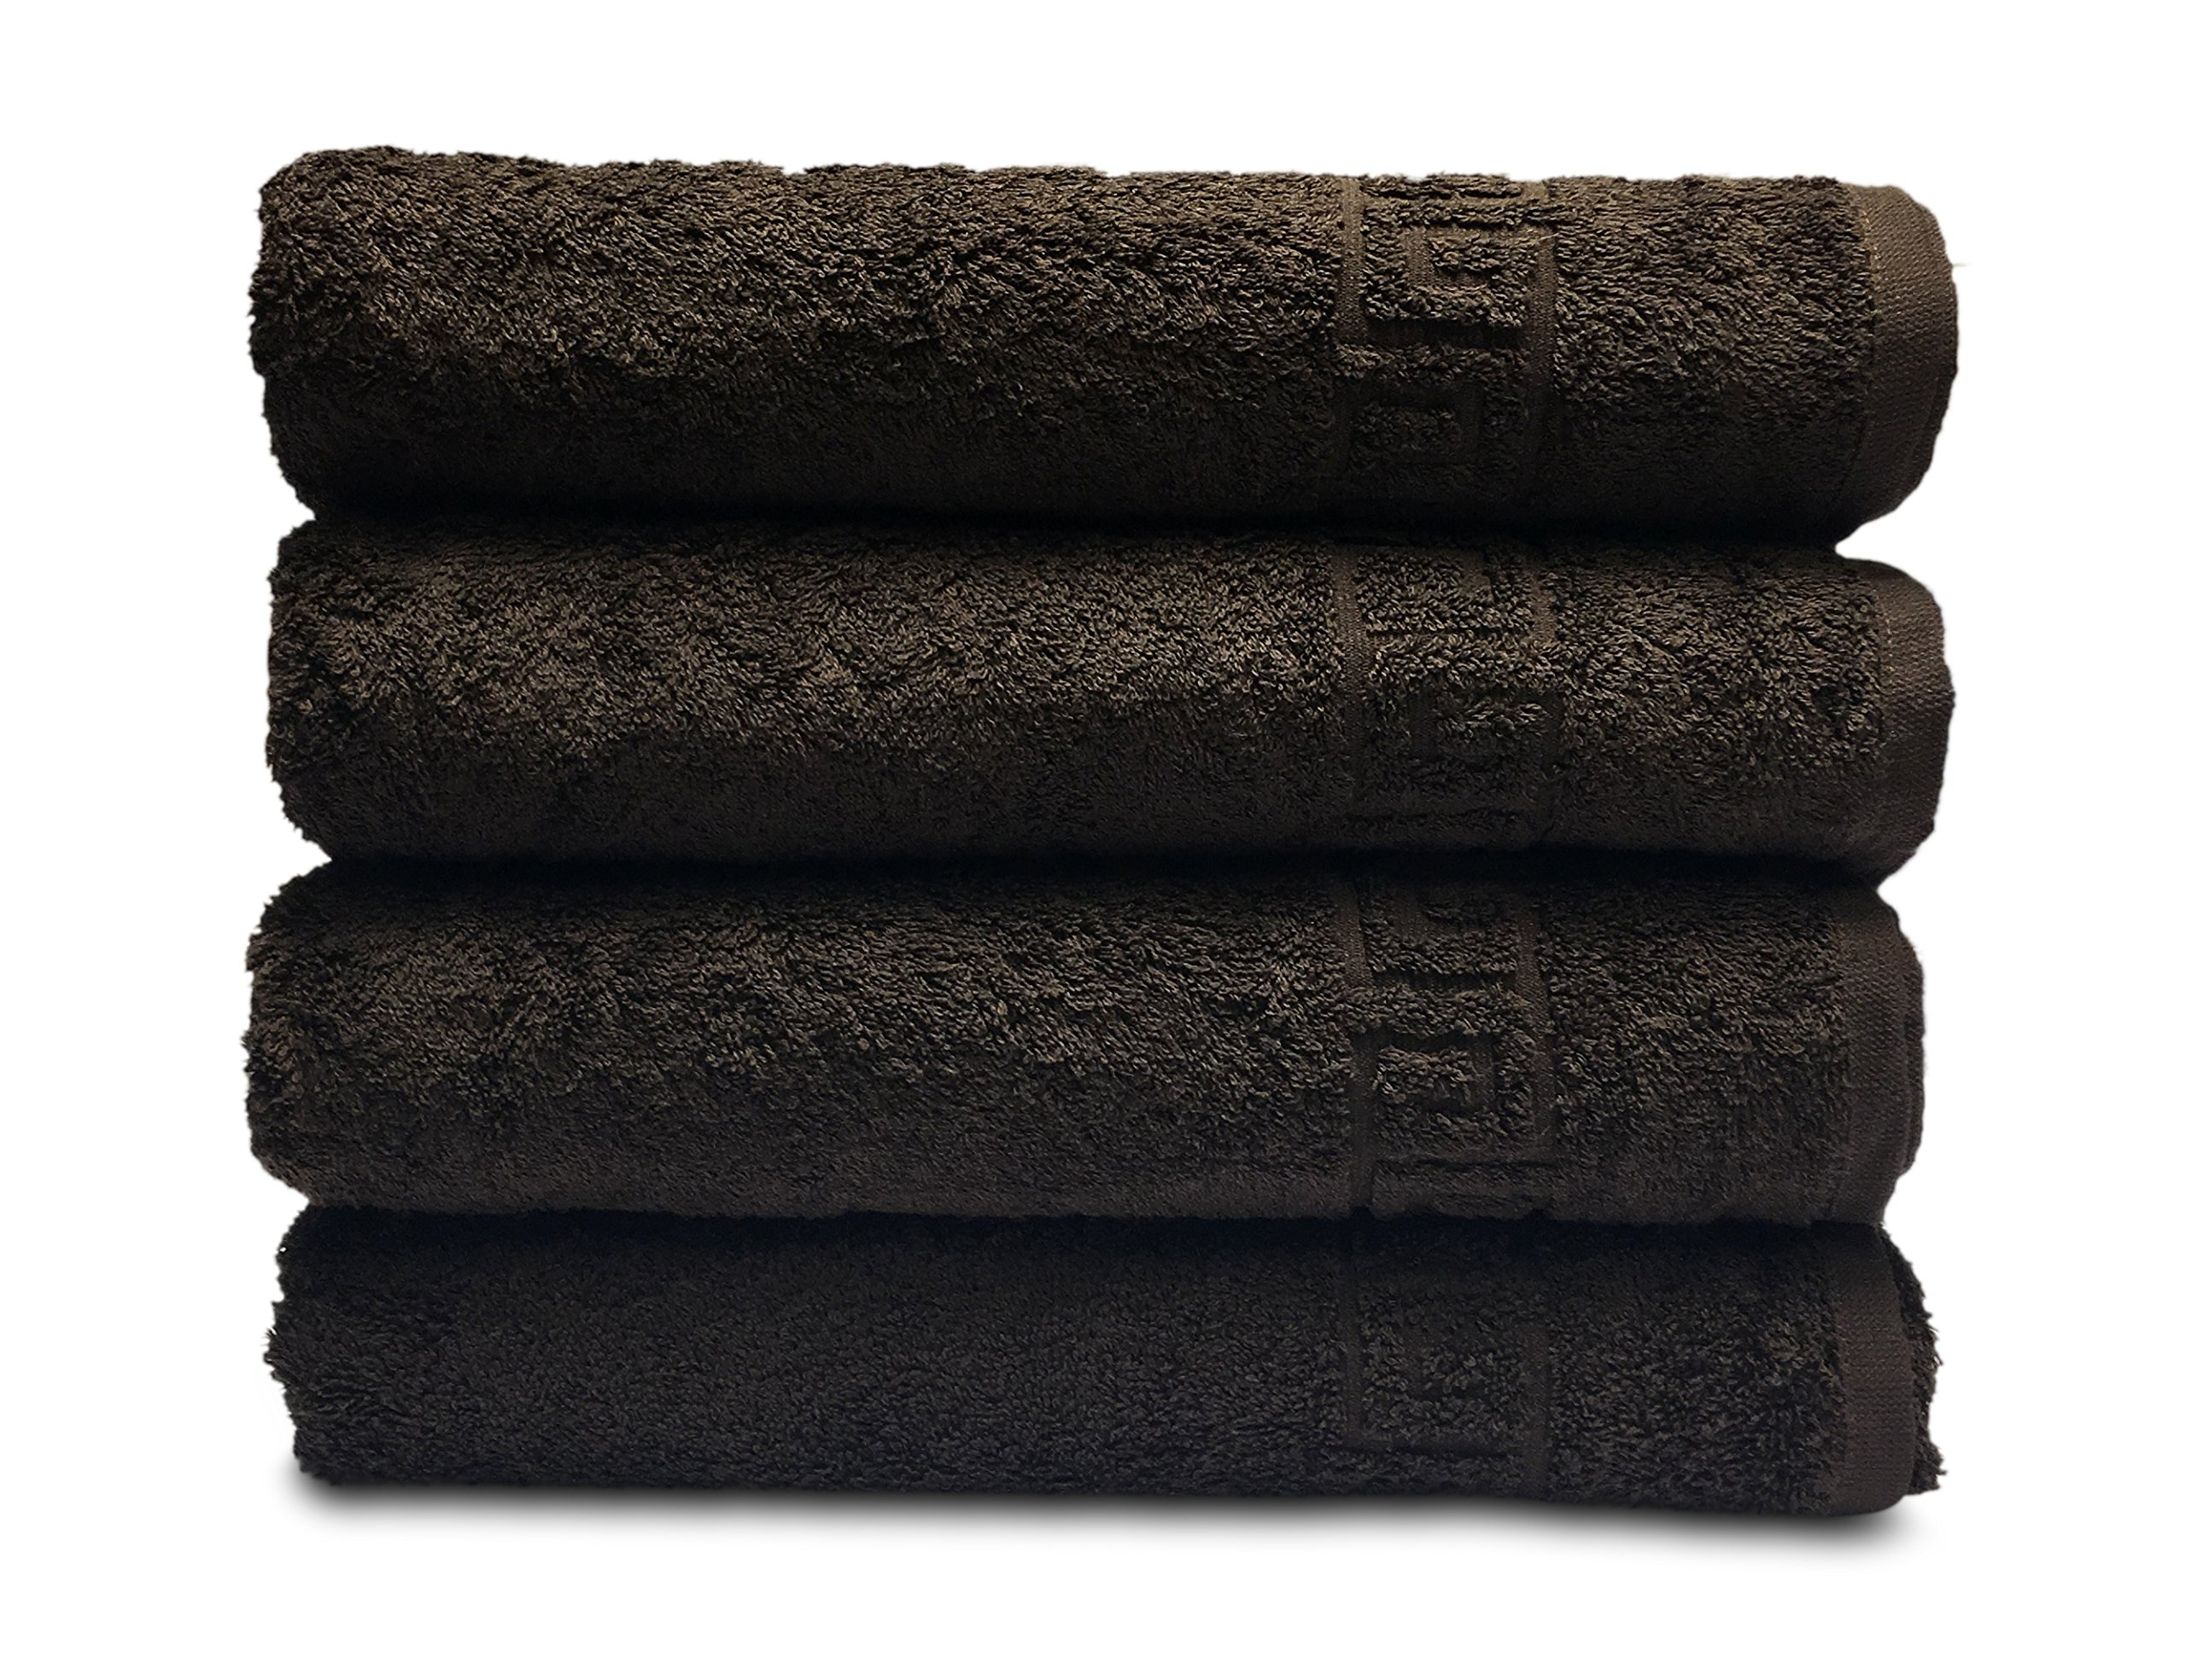 Goza Towels Greek Key Design Cotton Towels (Dark Brown, Hand Towels - 4 Pack)